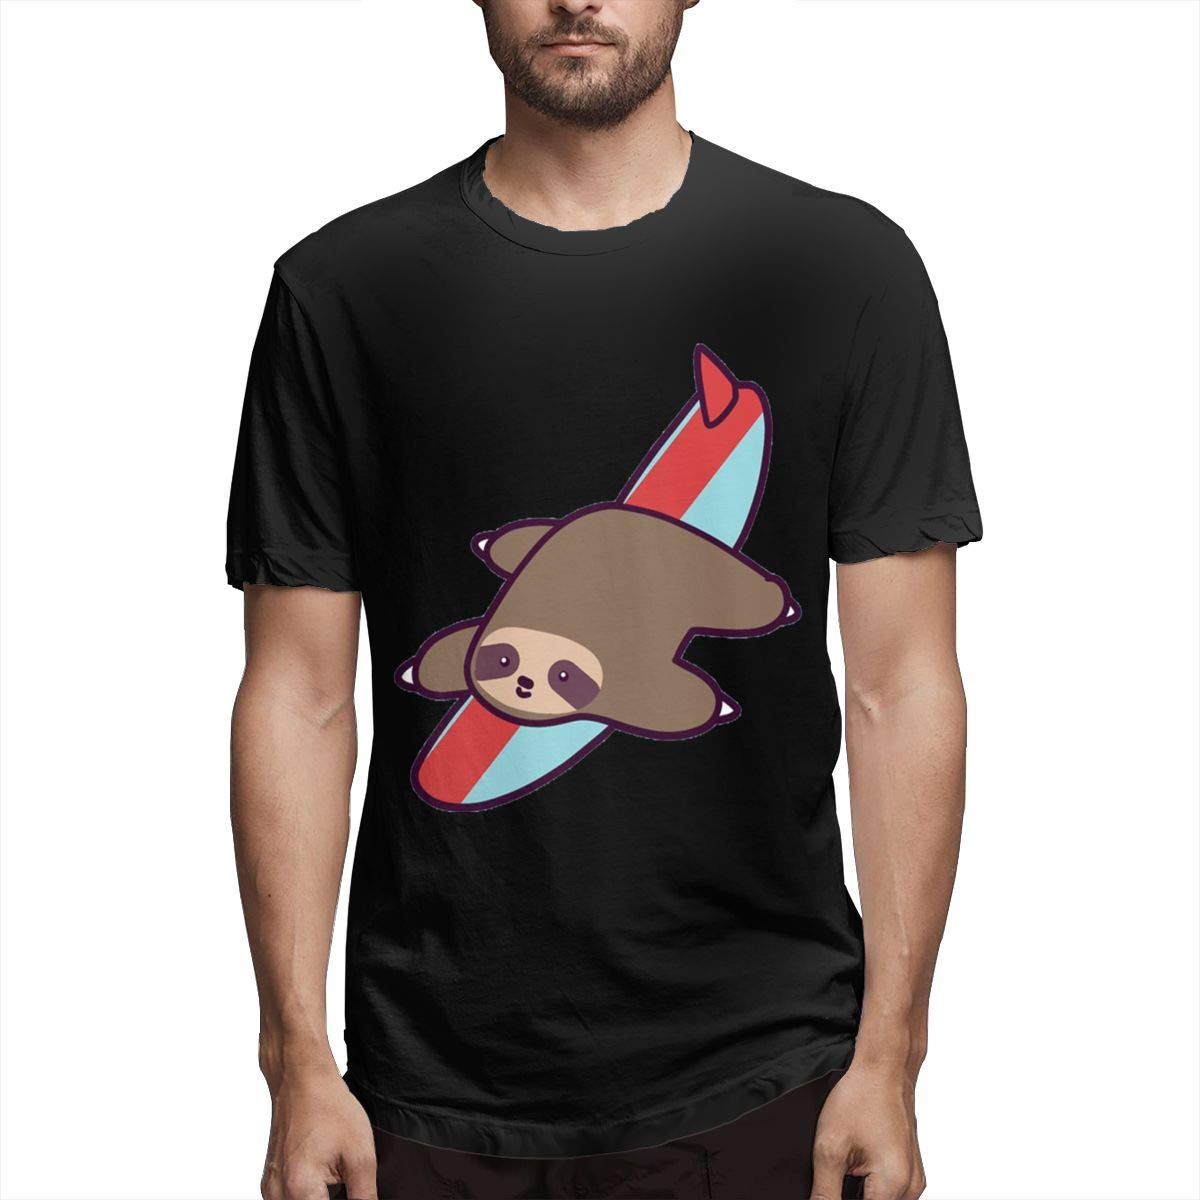 Smooffly S Surfing Sloth Comfortable Crew Neck Short Sleeve T Shirt